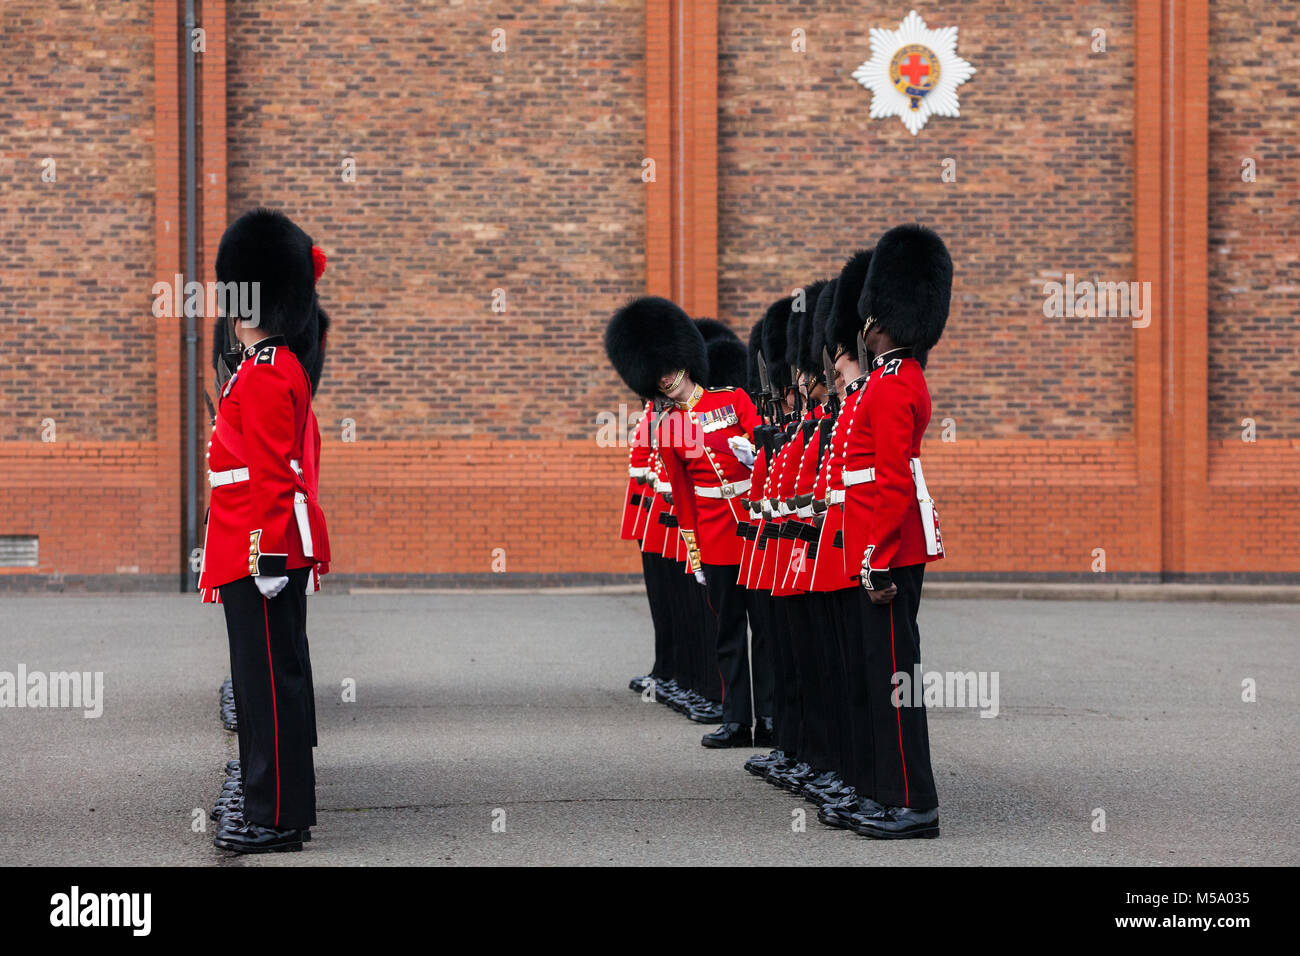 Windsor, UK. 21st February, 2018. An officer inspects the 1st Battalion Coldstream Guards as part of the Major General's Stock Photo